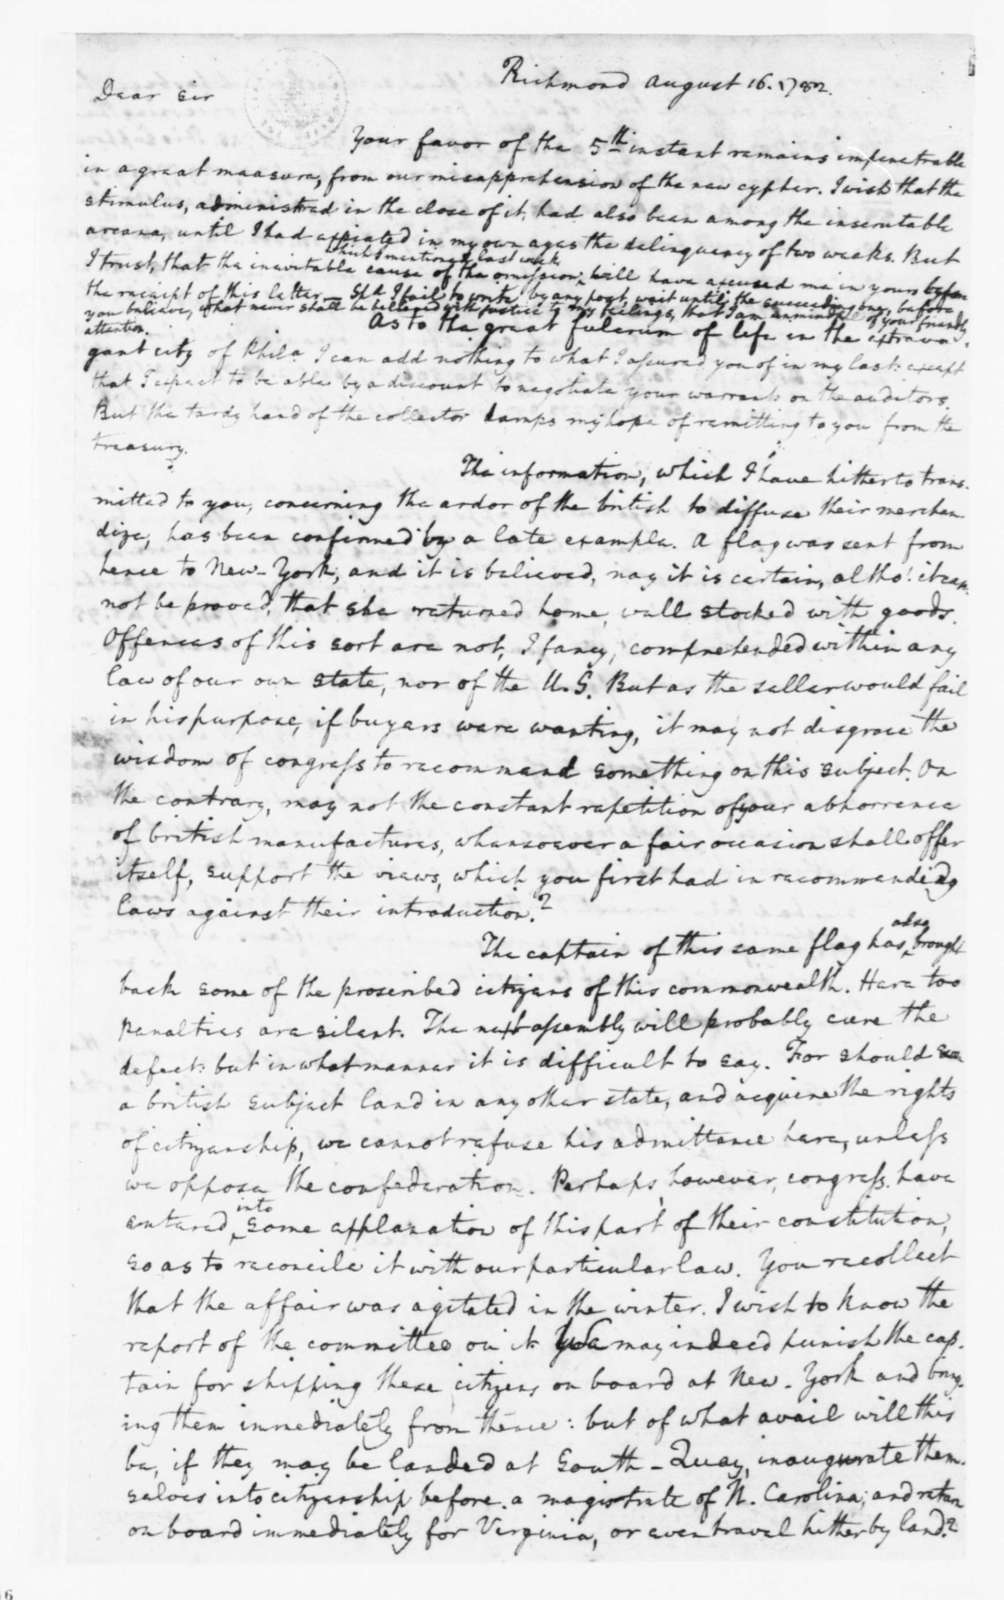 Edmund Randolph to James Madison, August 16, 1782. Partly in Cipher.